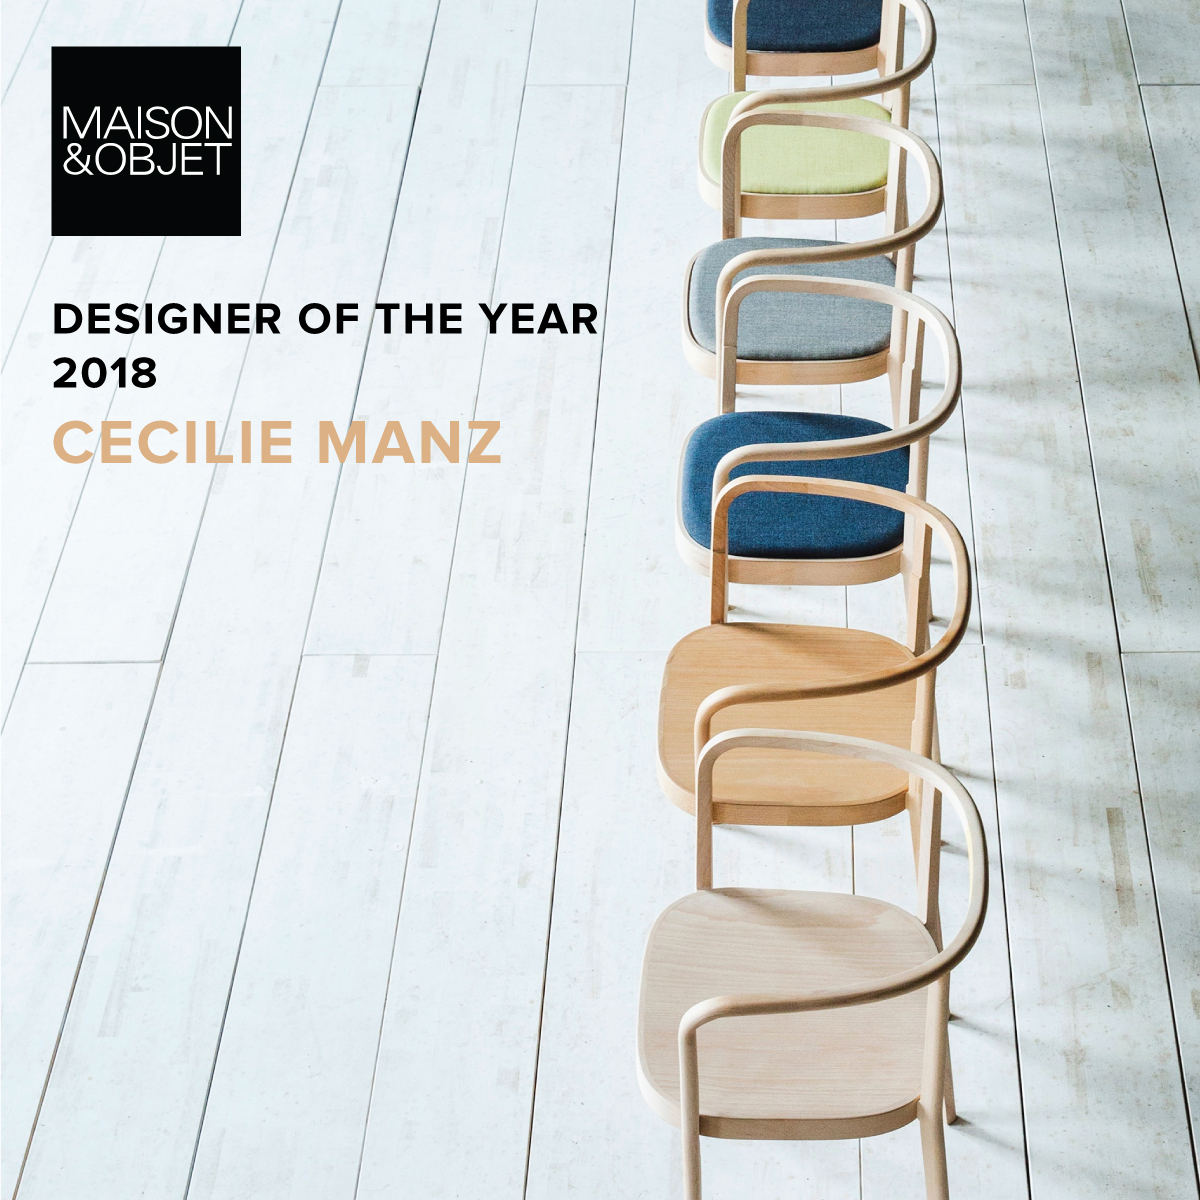 Maison et Objet 2018: Why You Should Already be Counting the Days maison et objet 2018 Maison et Objet 2018: Why You Should Already be Counting the Days Cecilie Manz